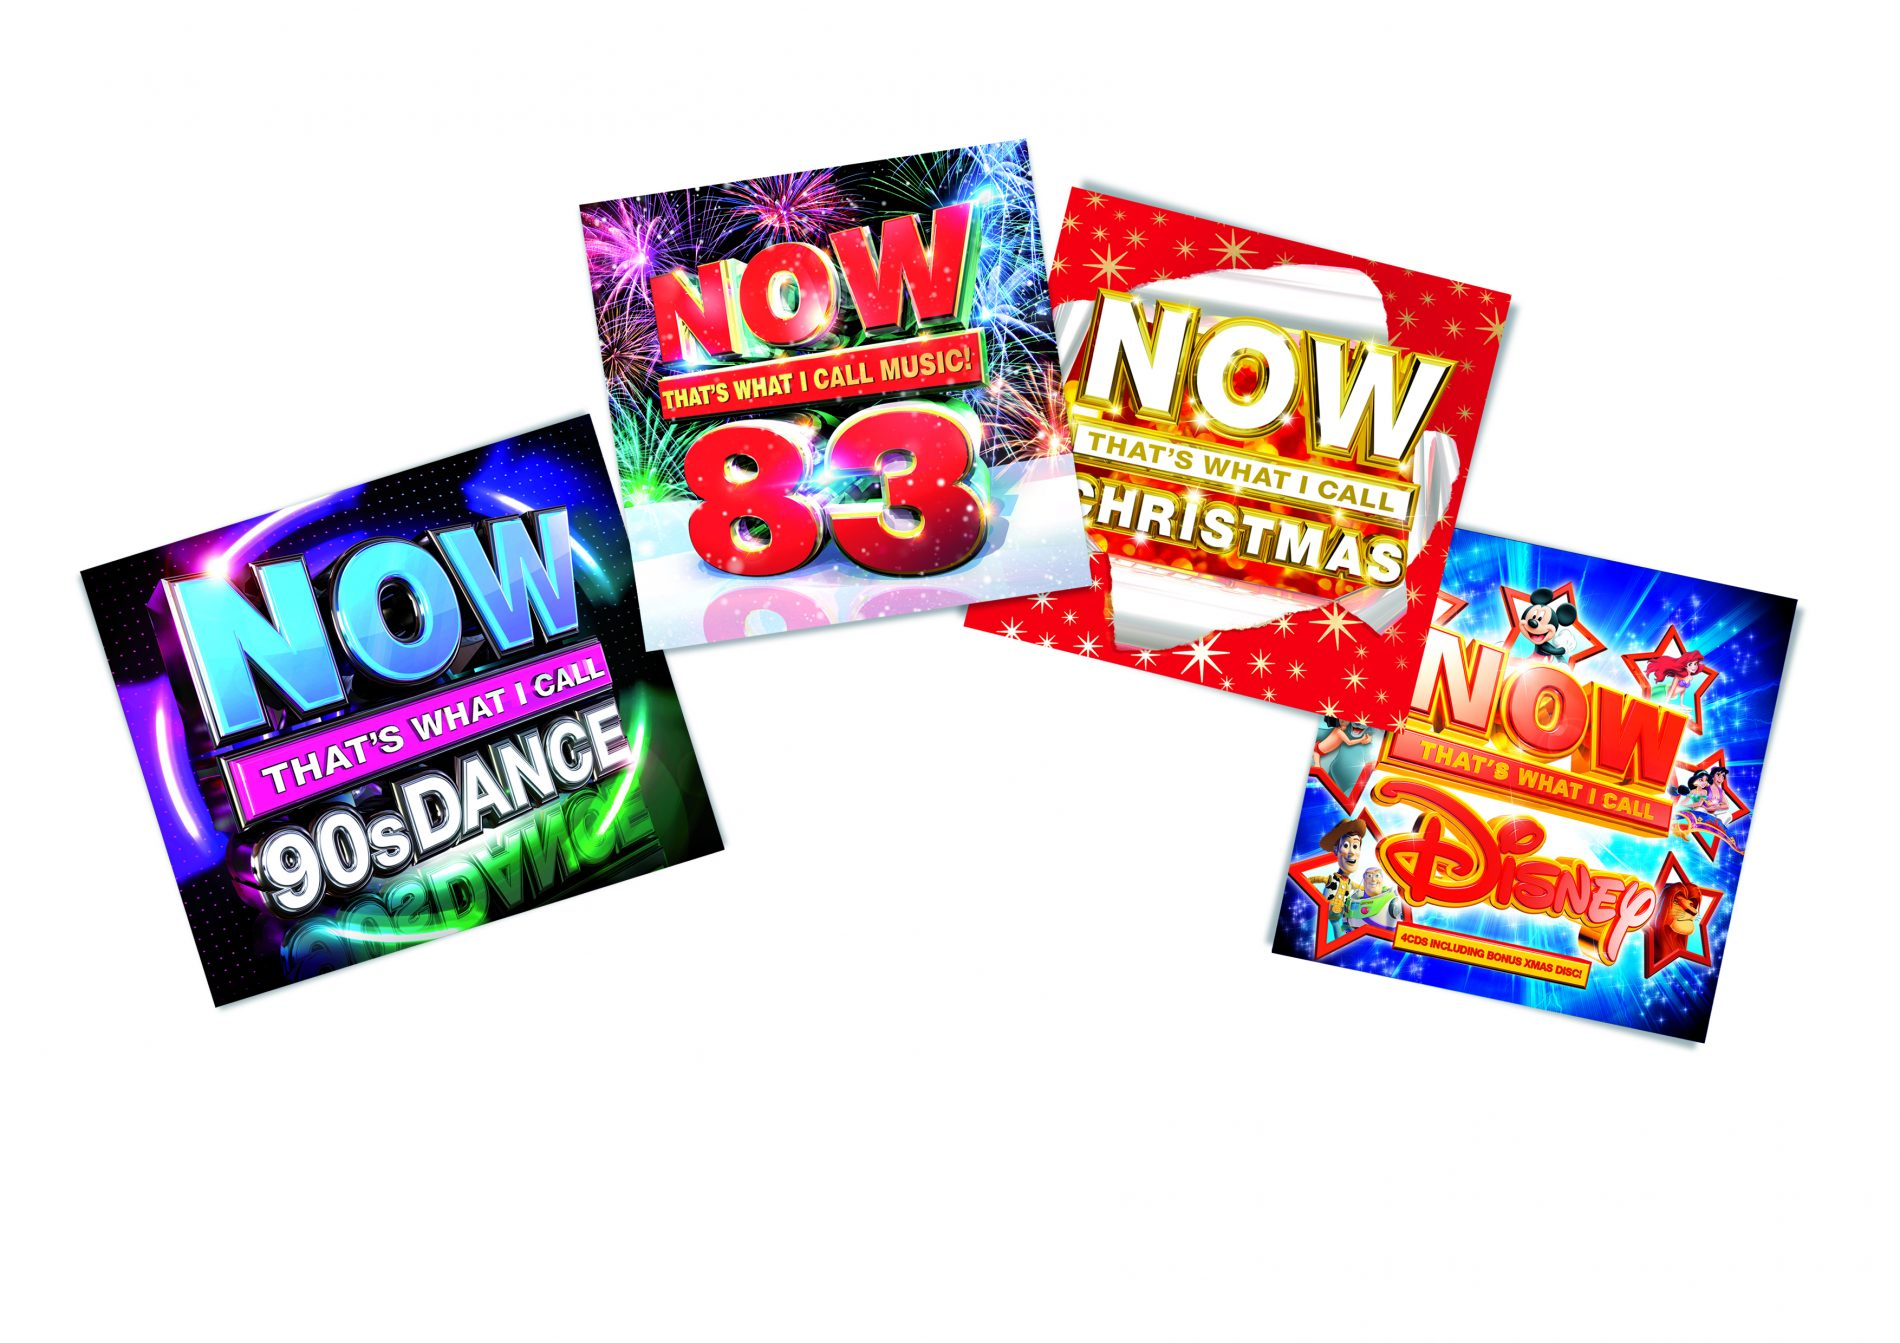 Win of 3 sets of NOW CDs in time for Christmas